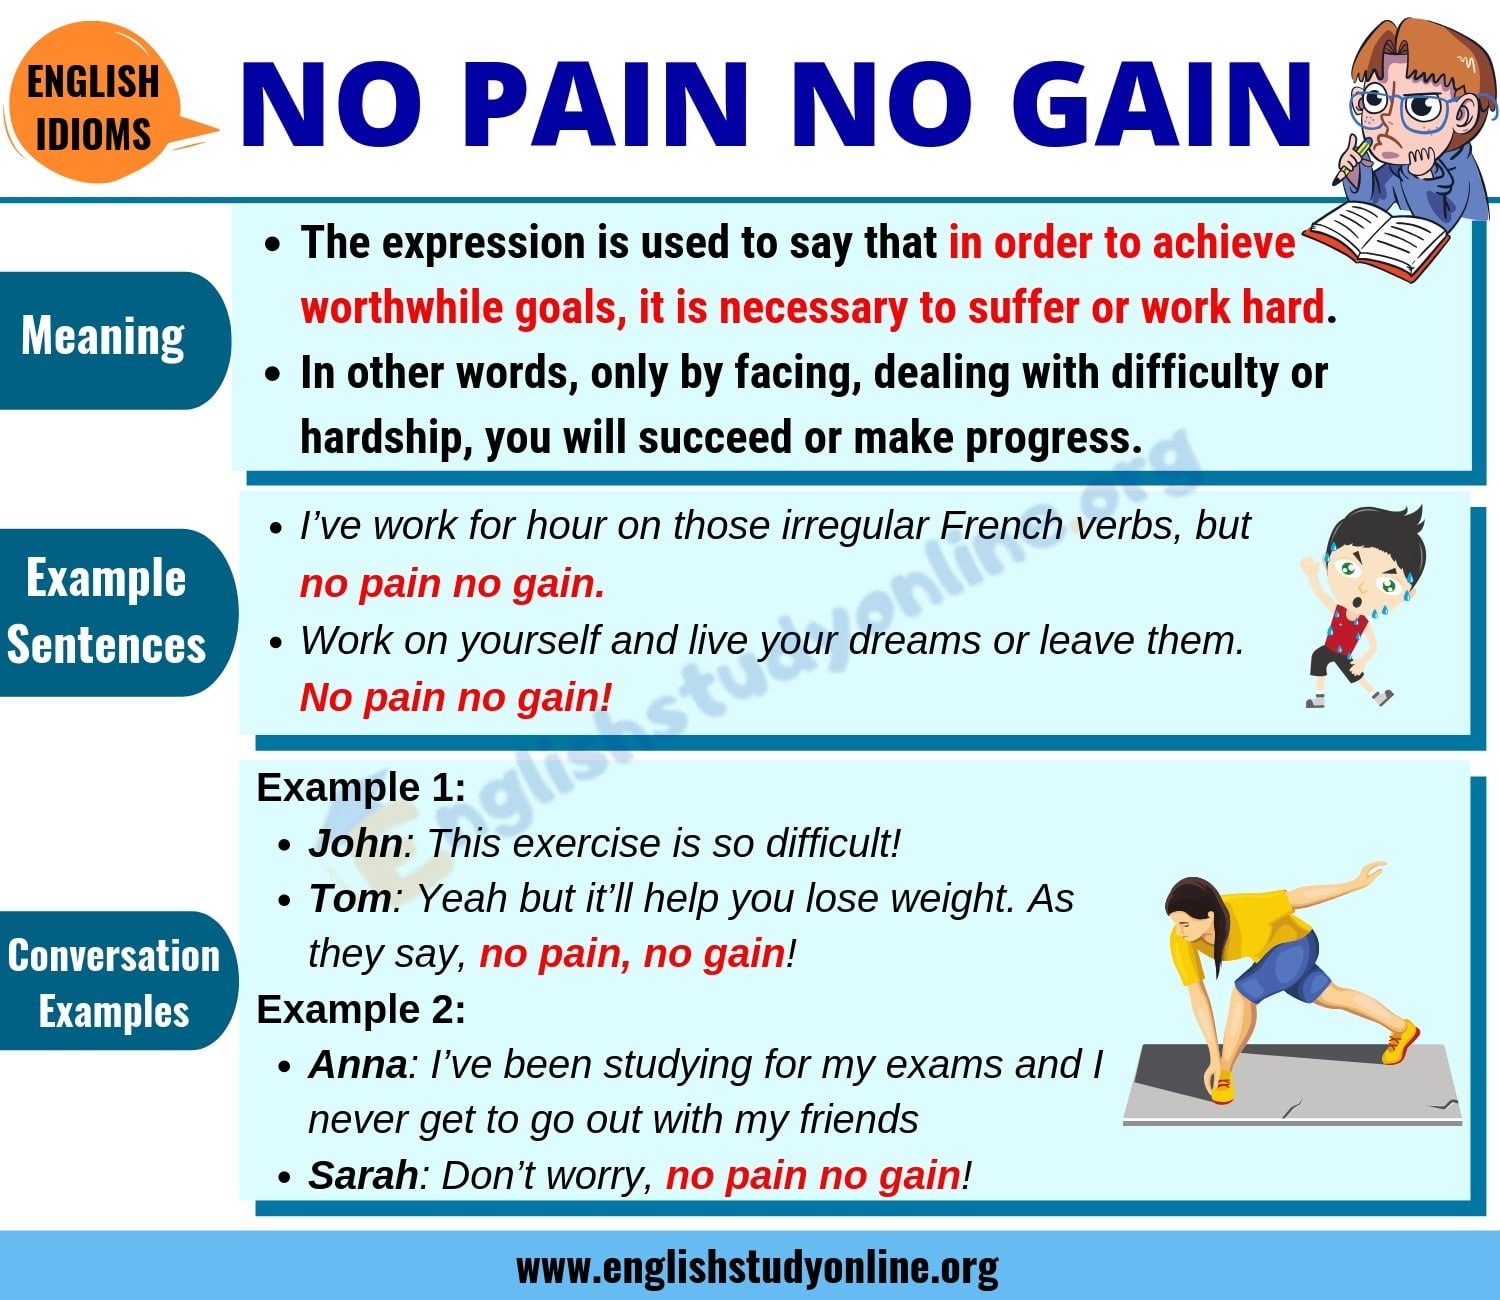 No Pain No Gain: Definition, Usage & Useful Examples in